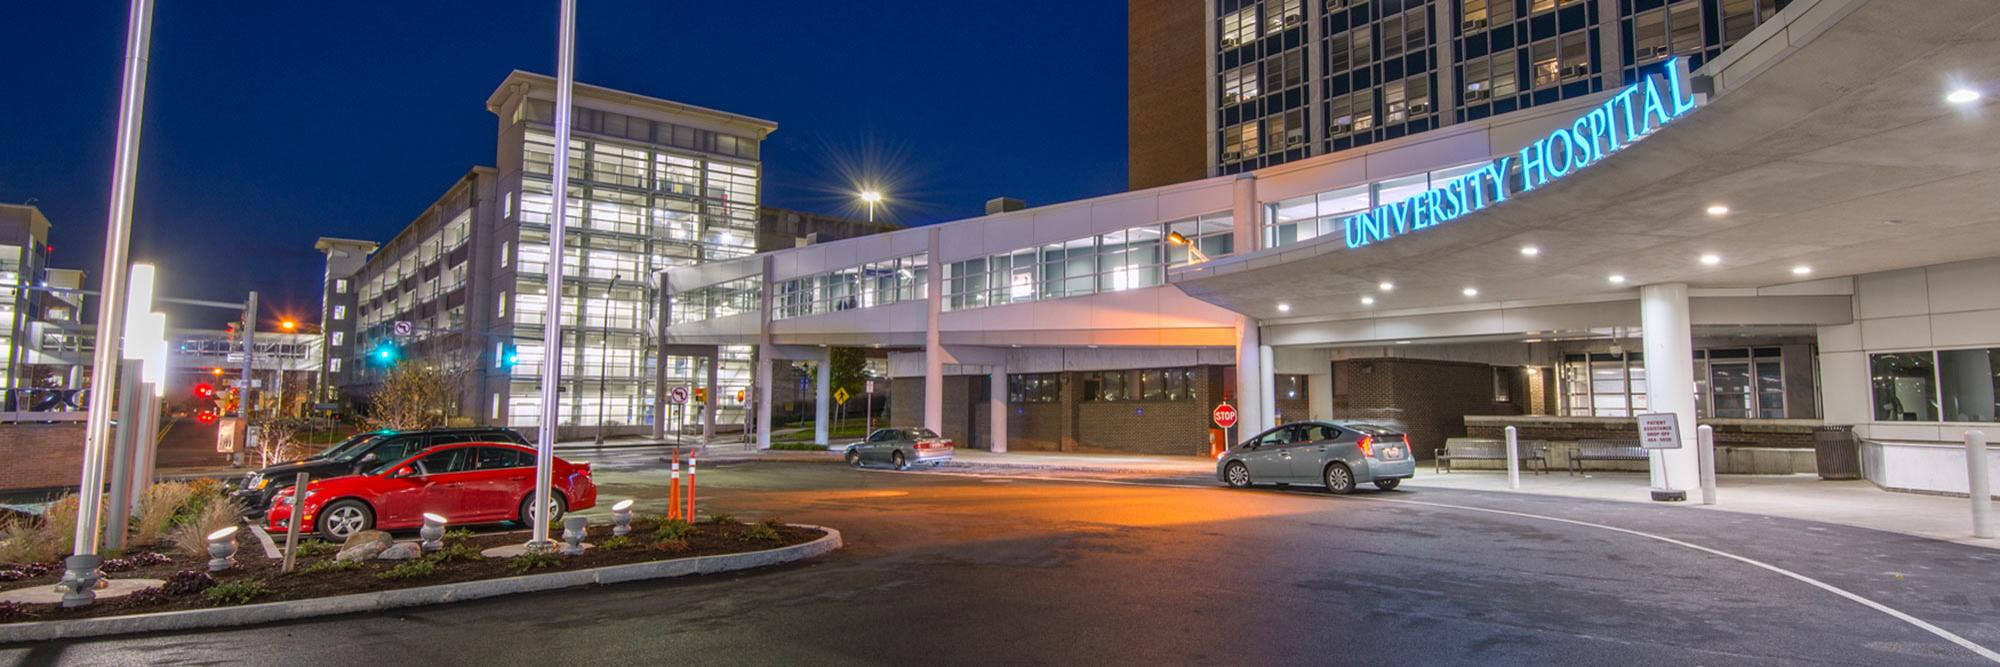 University Hospital Downtown | SUNY Upstate Medical University